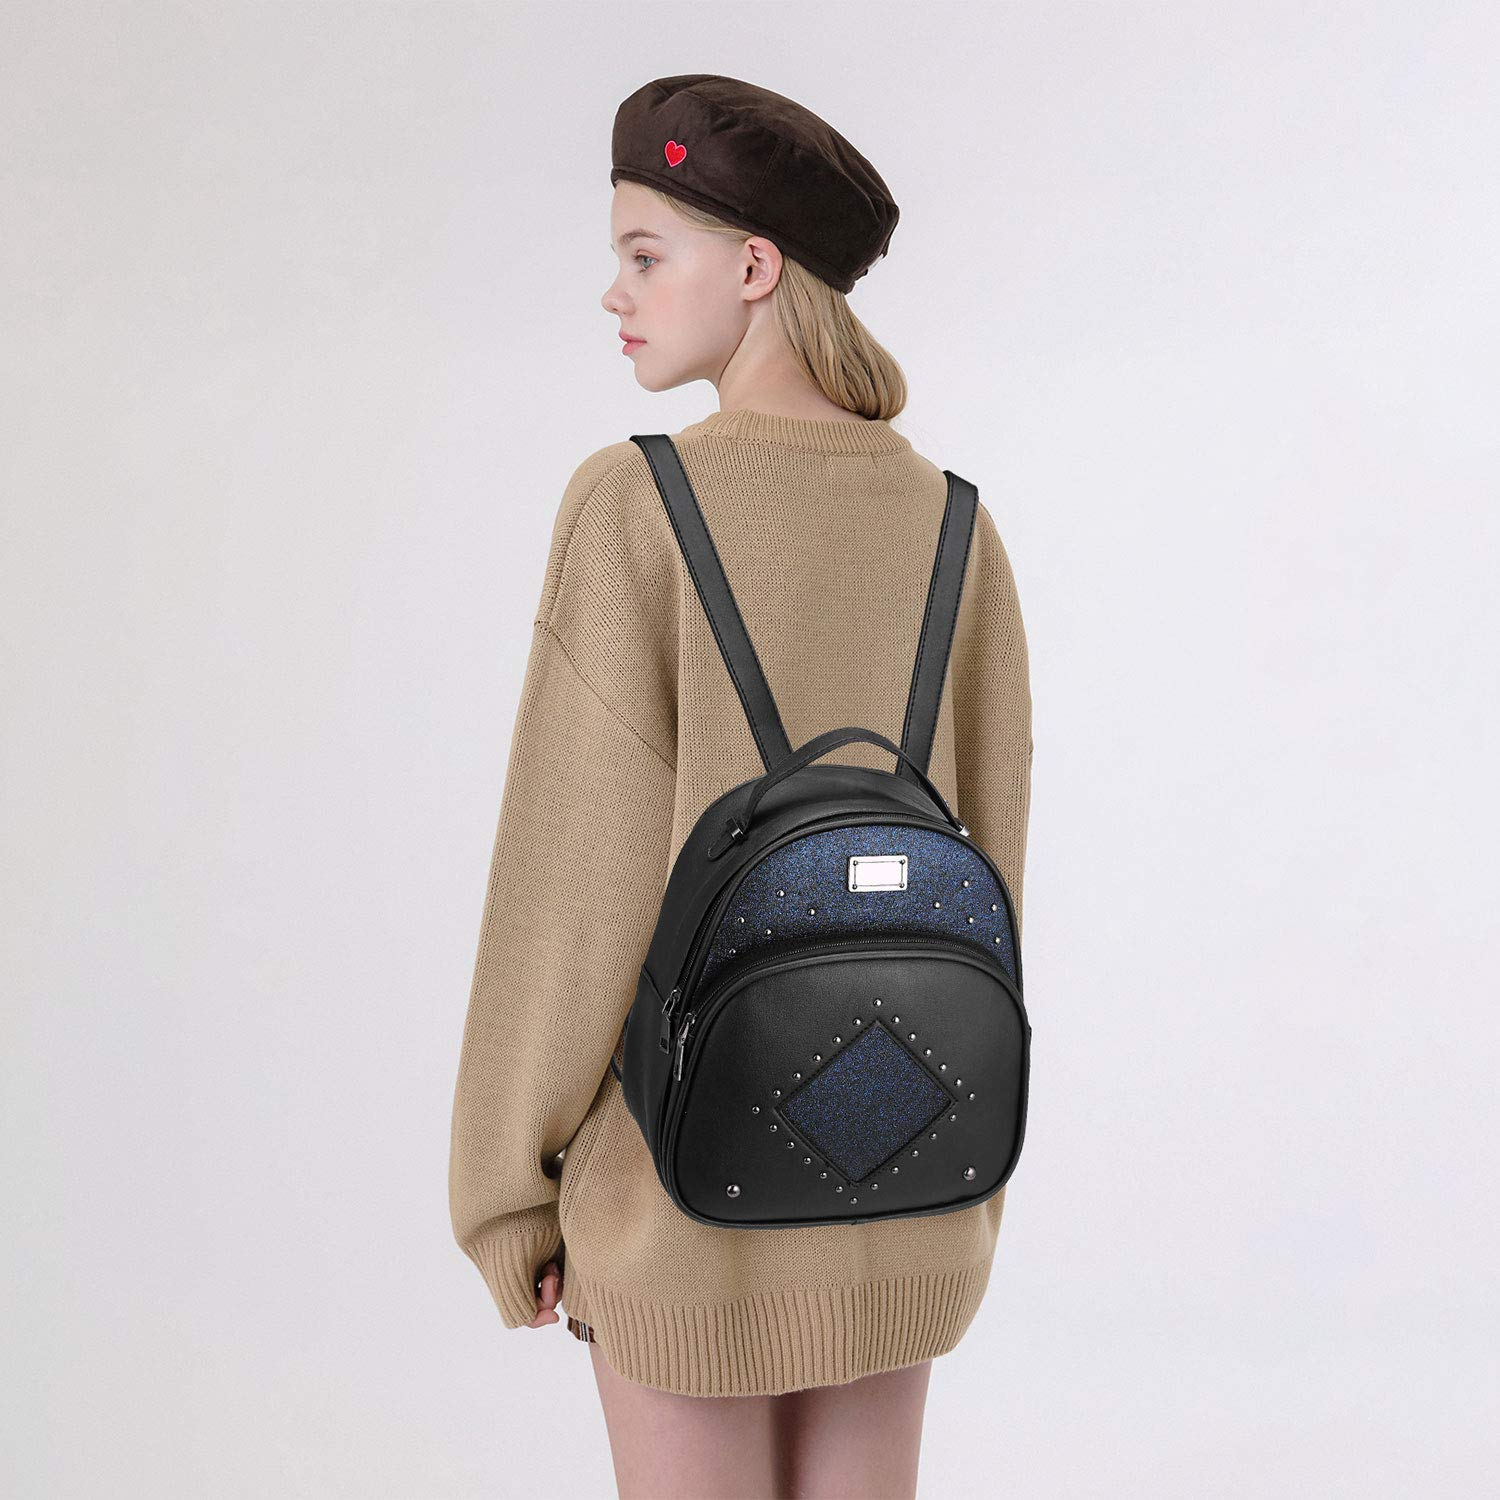 Women Mini PU Leather Purse Casual Daypack Sequins Backpack